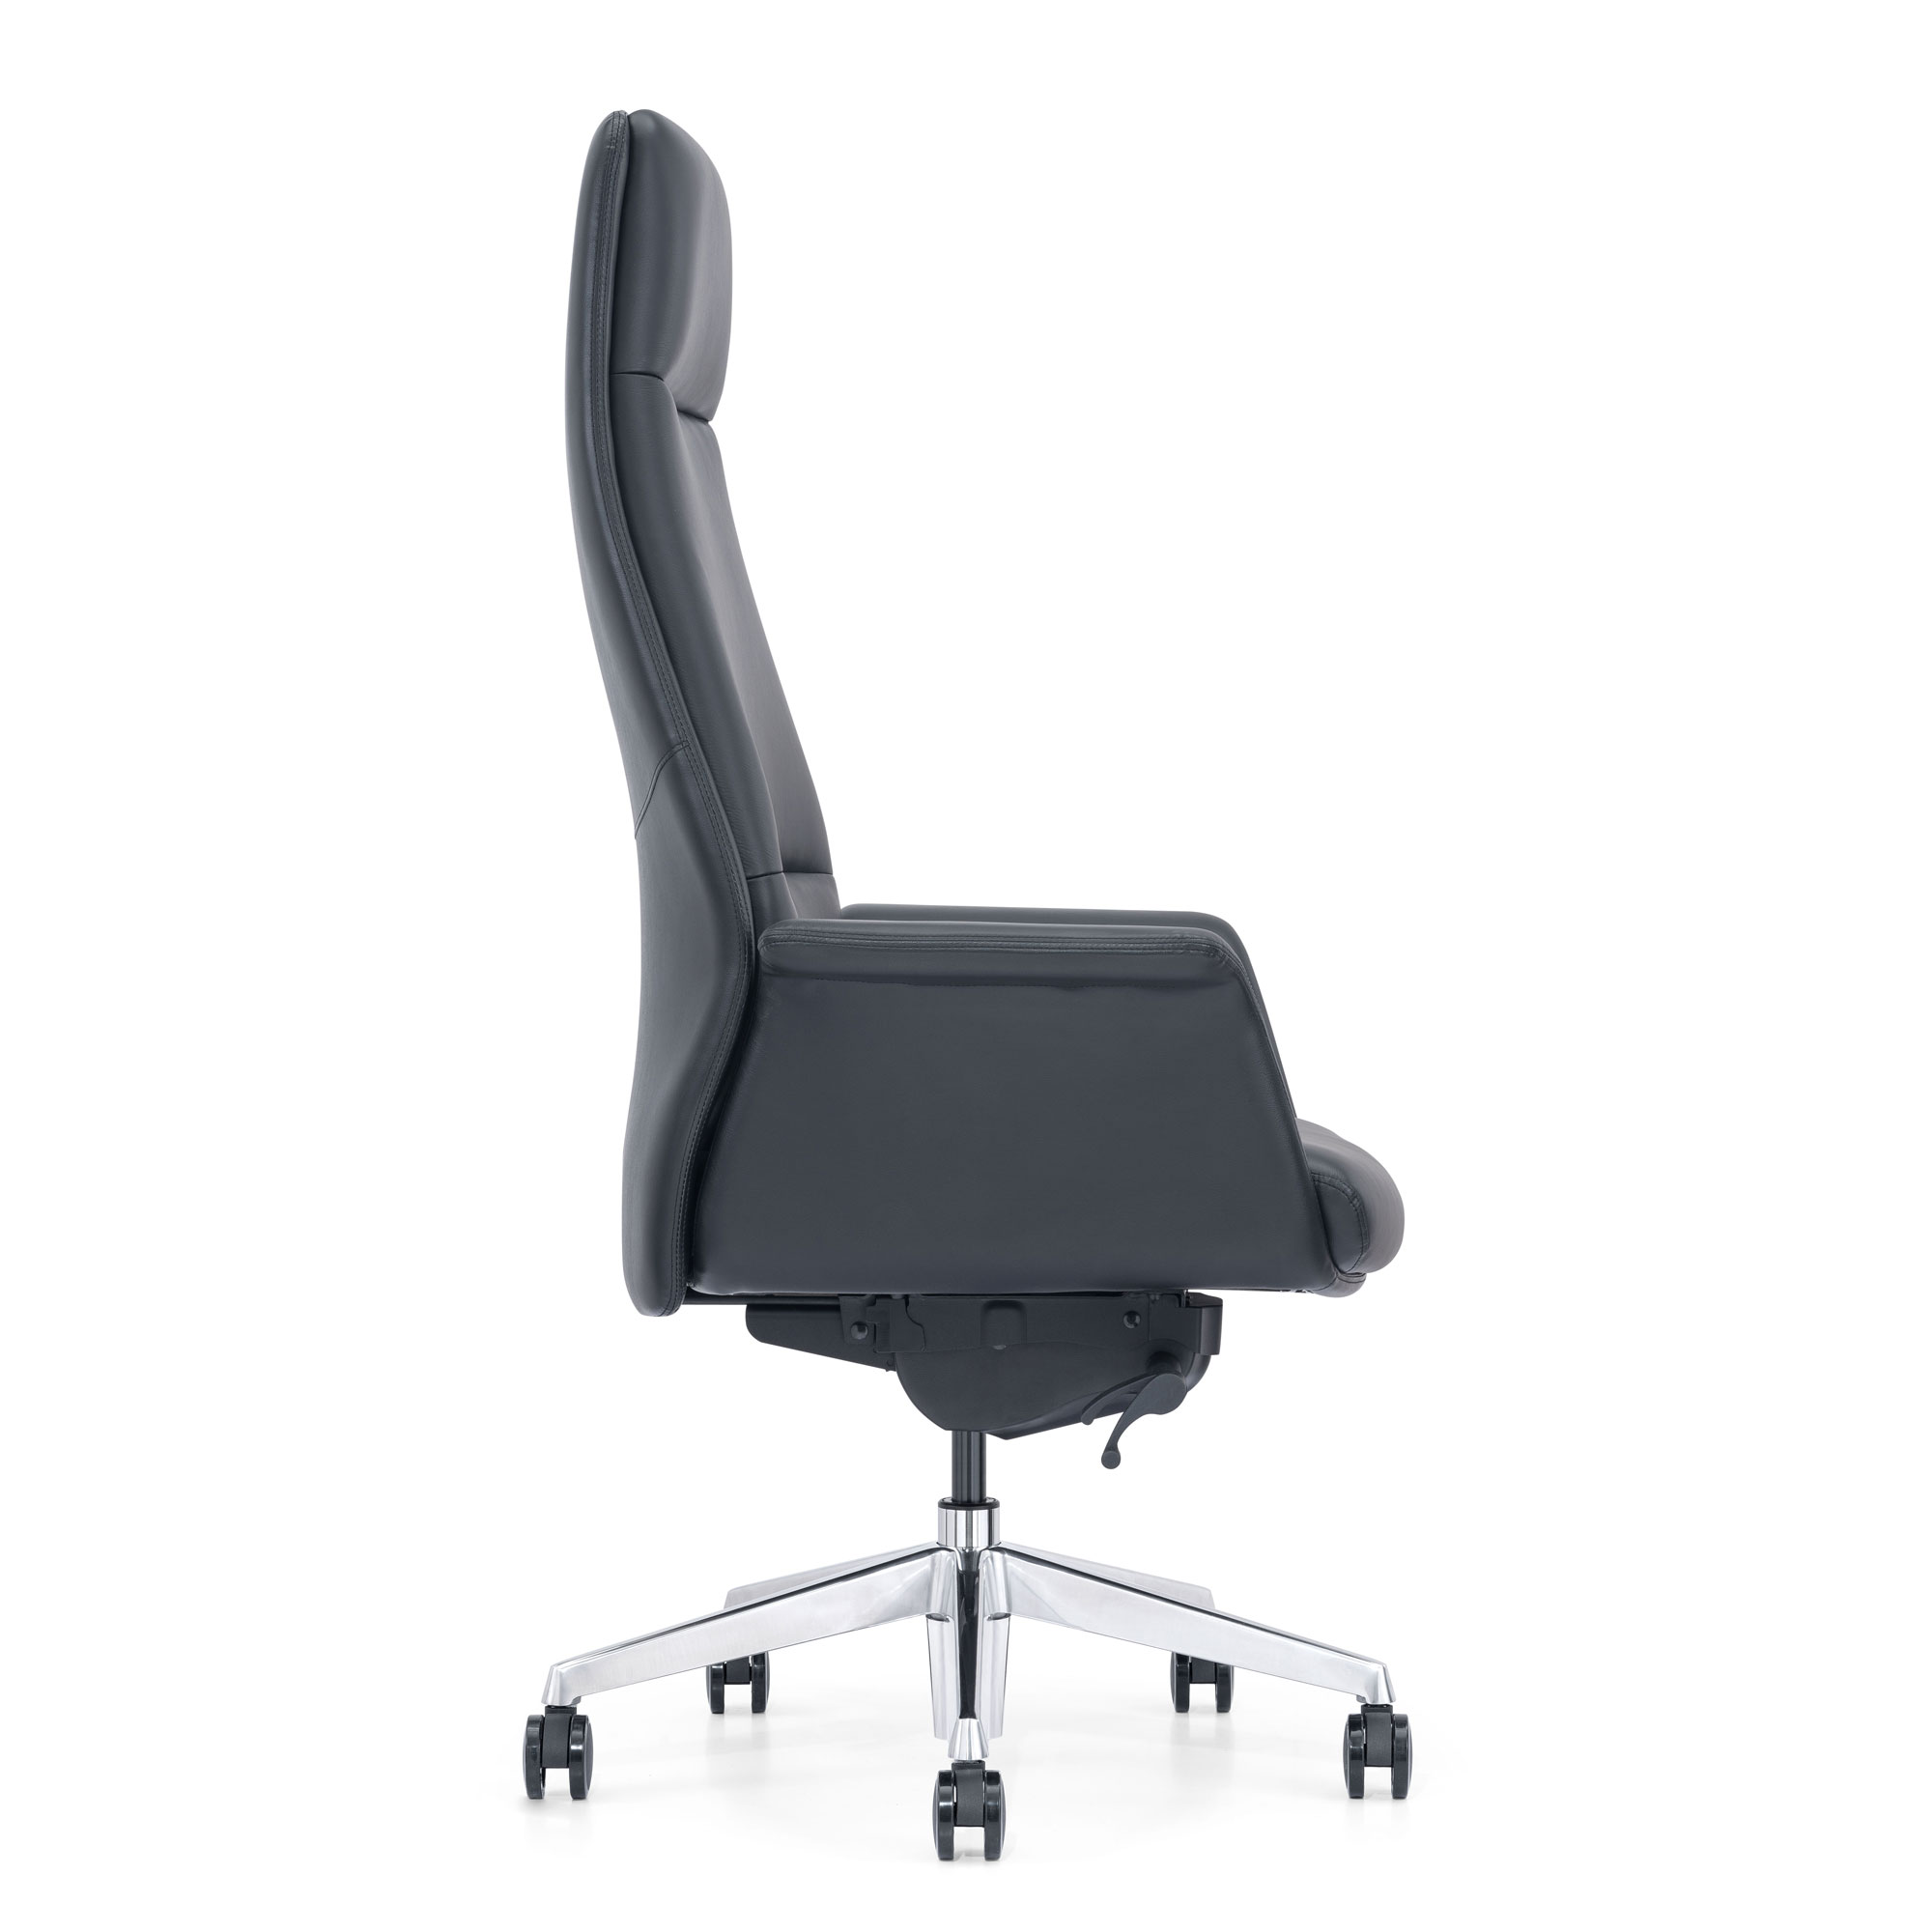 Black Leather High-Back Home Office Chair, Side View